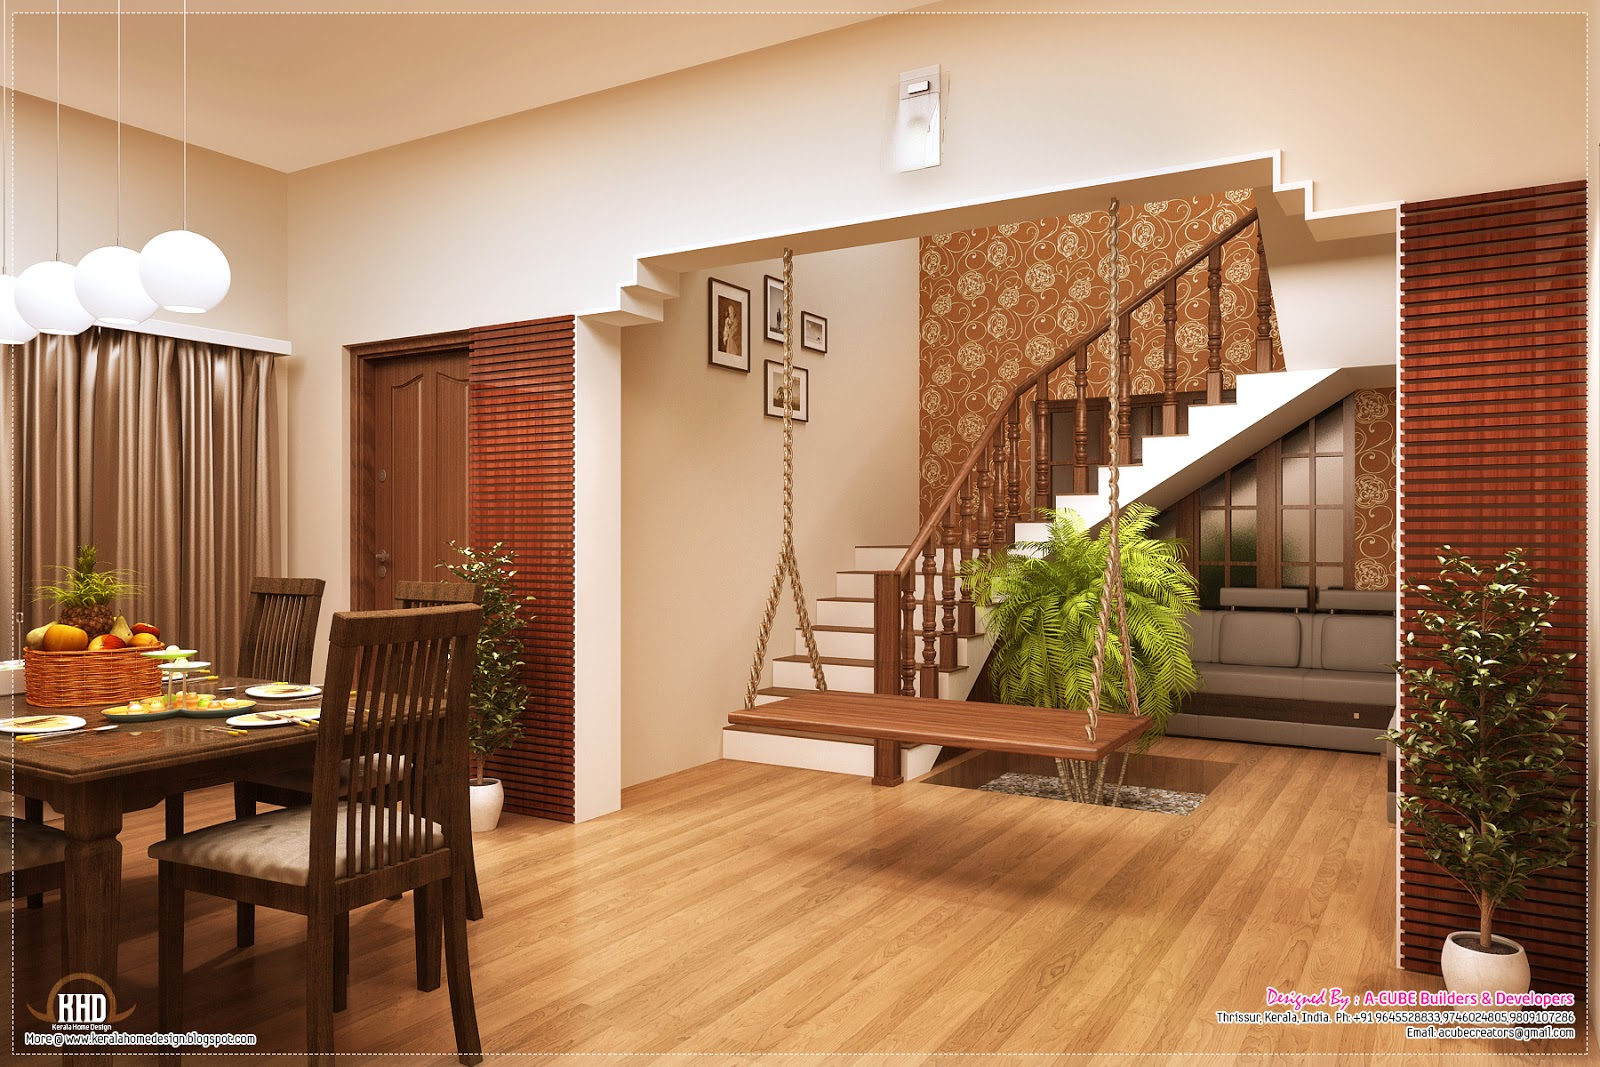 Awesome interior decoration ideas kerala home design and for Kerala model interior designs